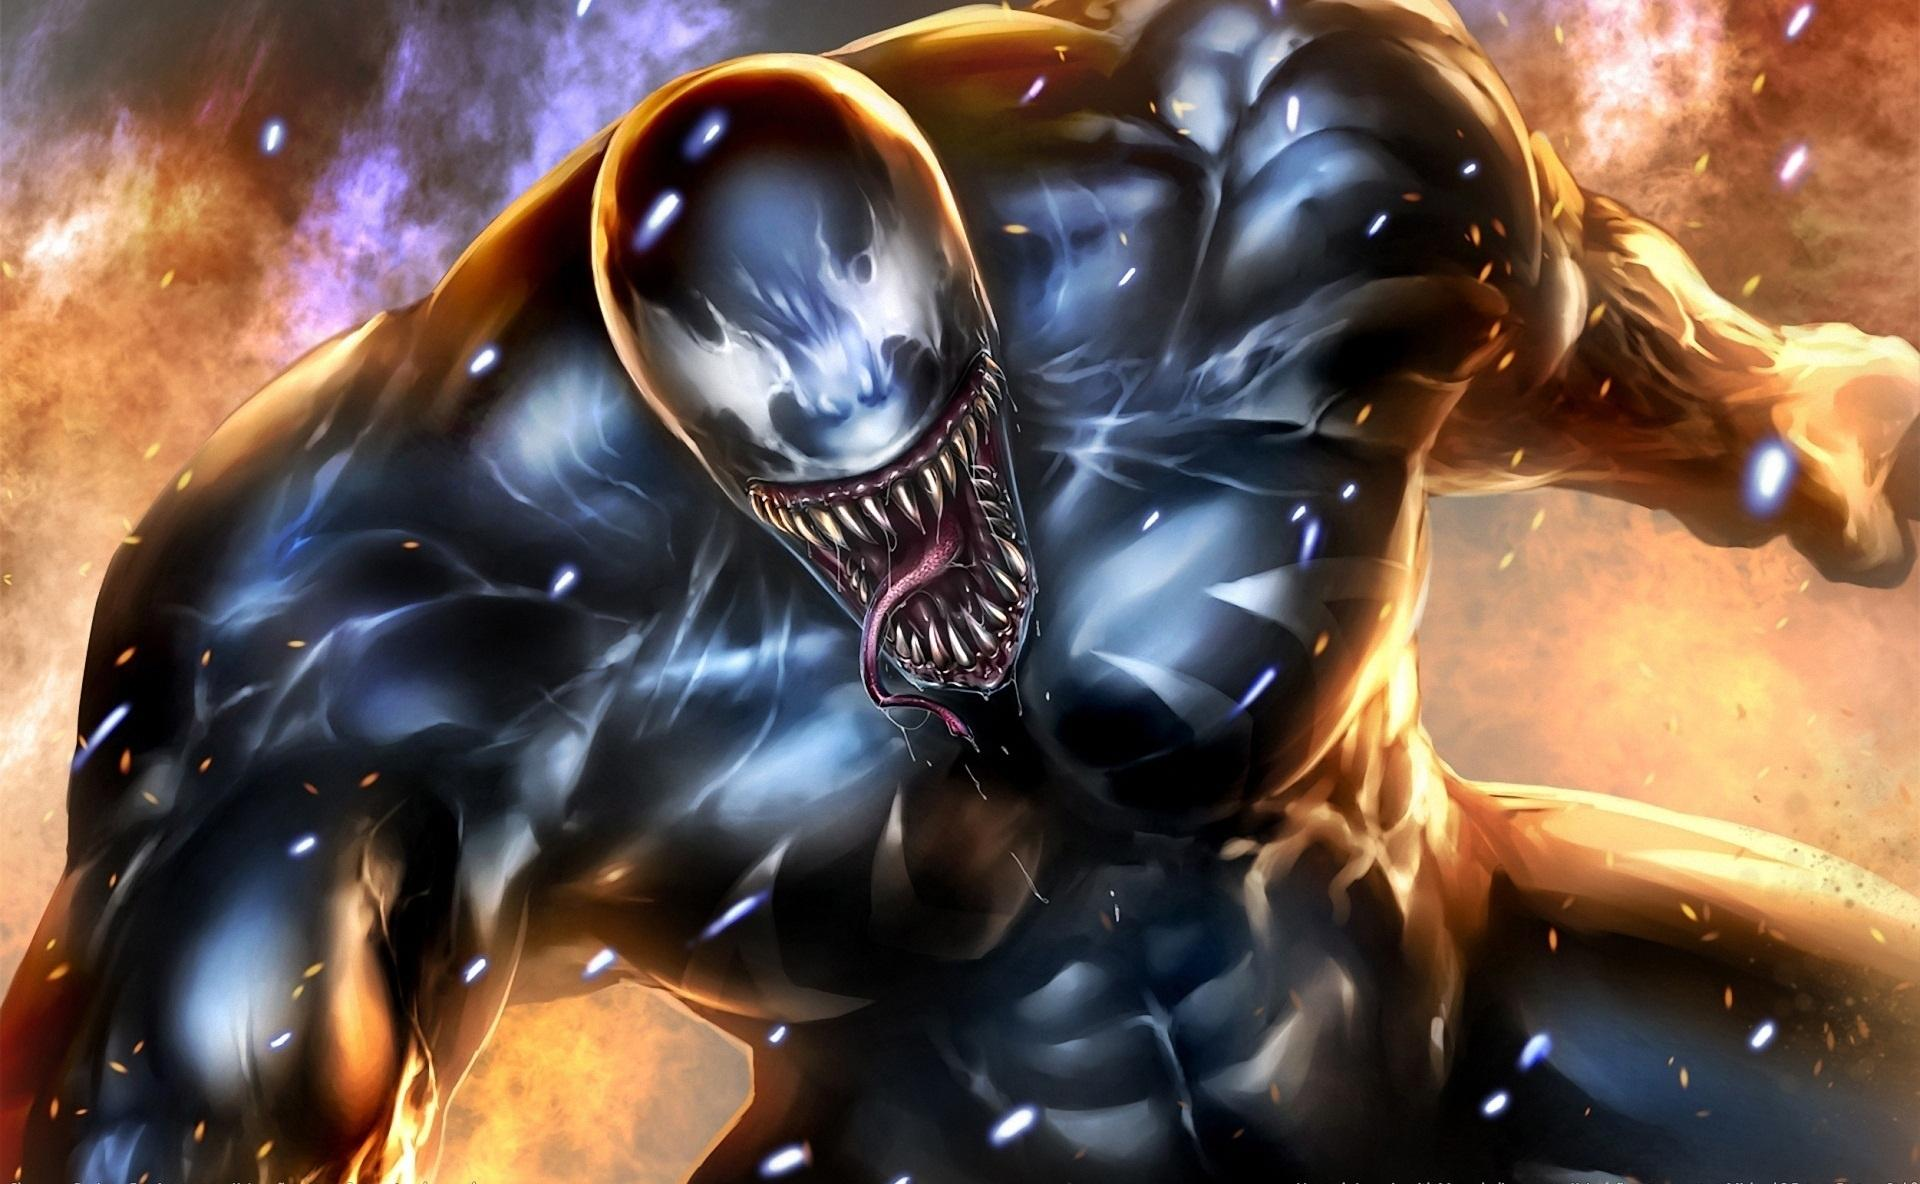 Venom comics wallpaper hd download - Venom hd wallpaper android ...